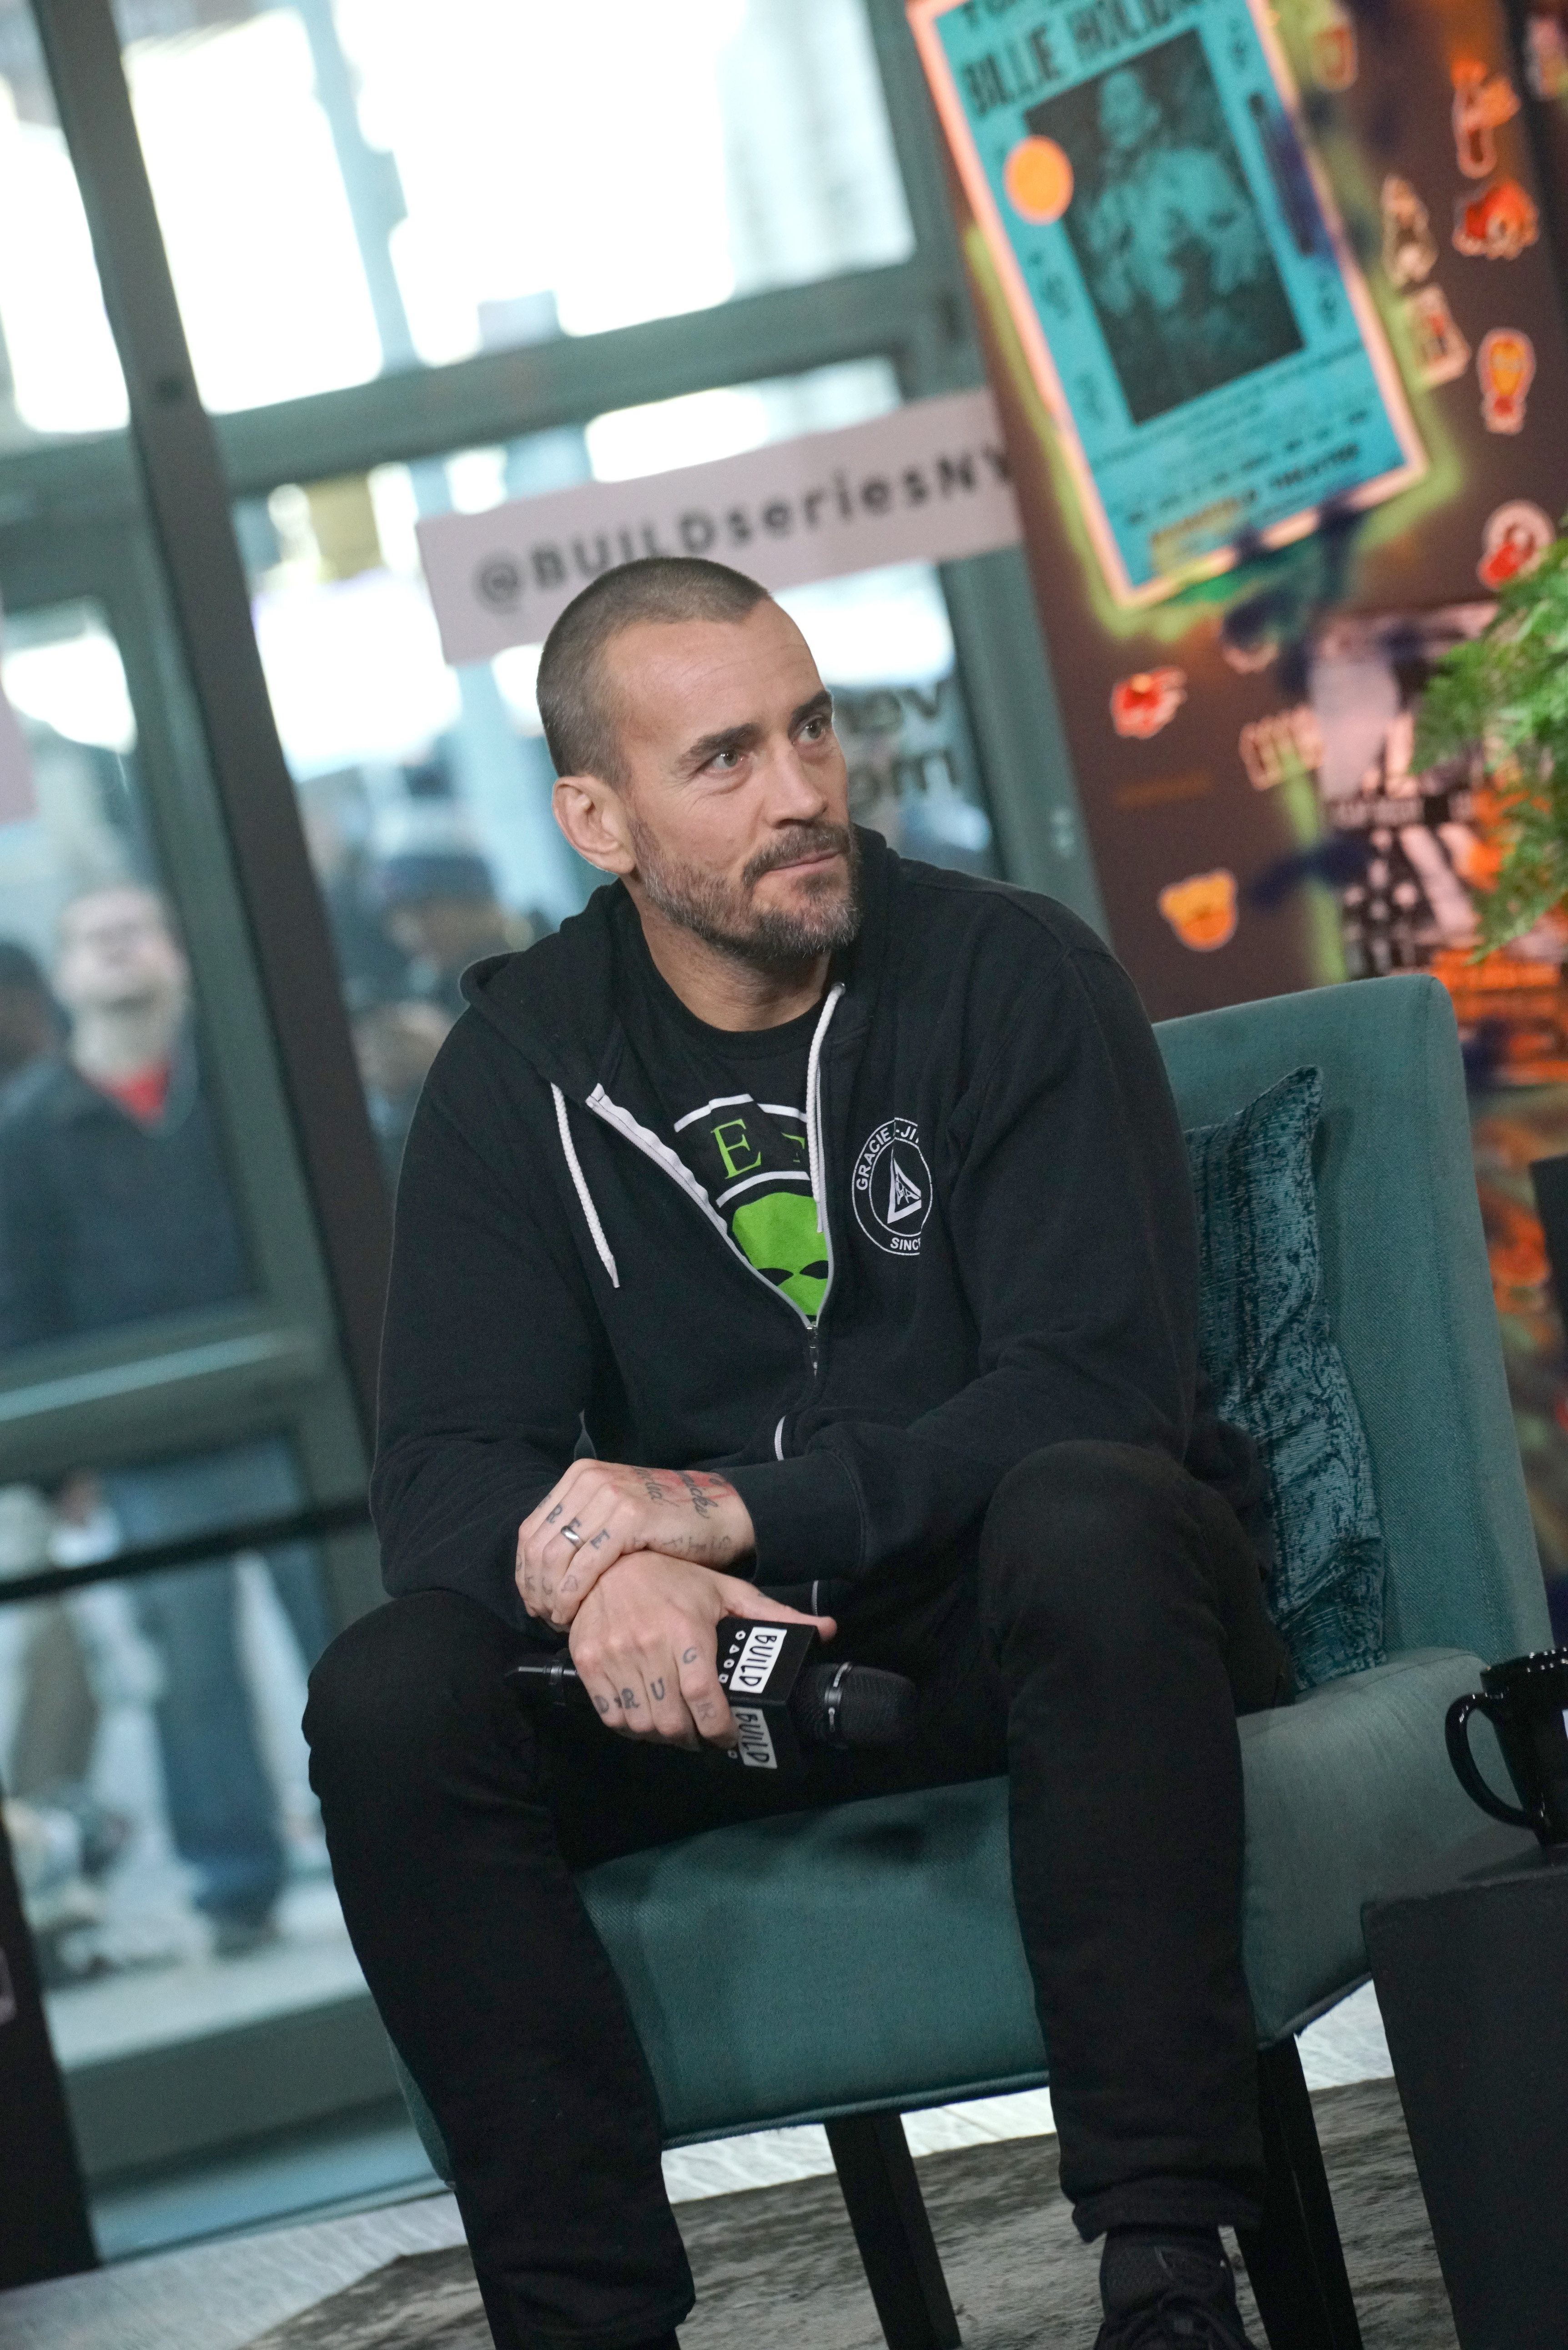 """Phil """"CM Punk"""" Brooks attends Build Series to discuss the film """"Girl on the Third Floor"""" at Build Studio on October 23, 2019 in New York City."""